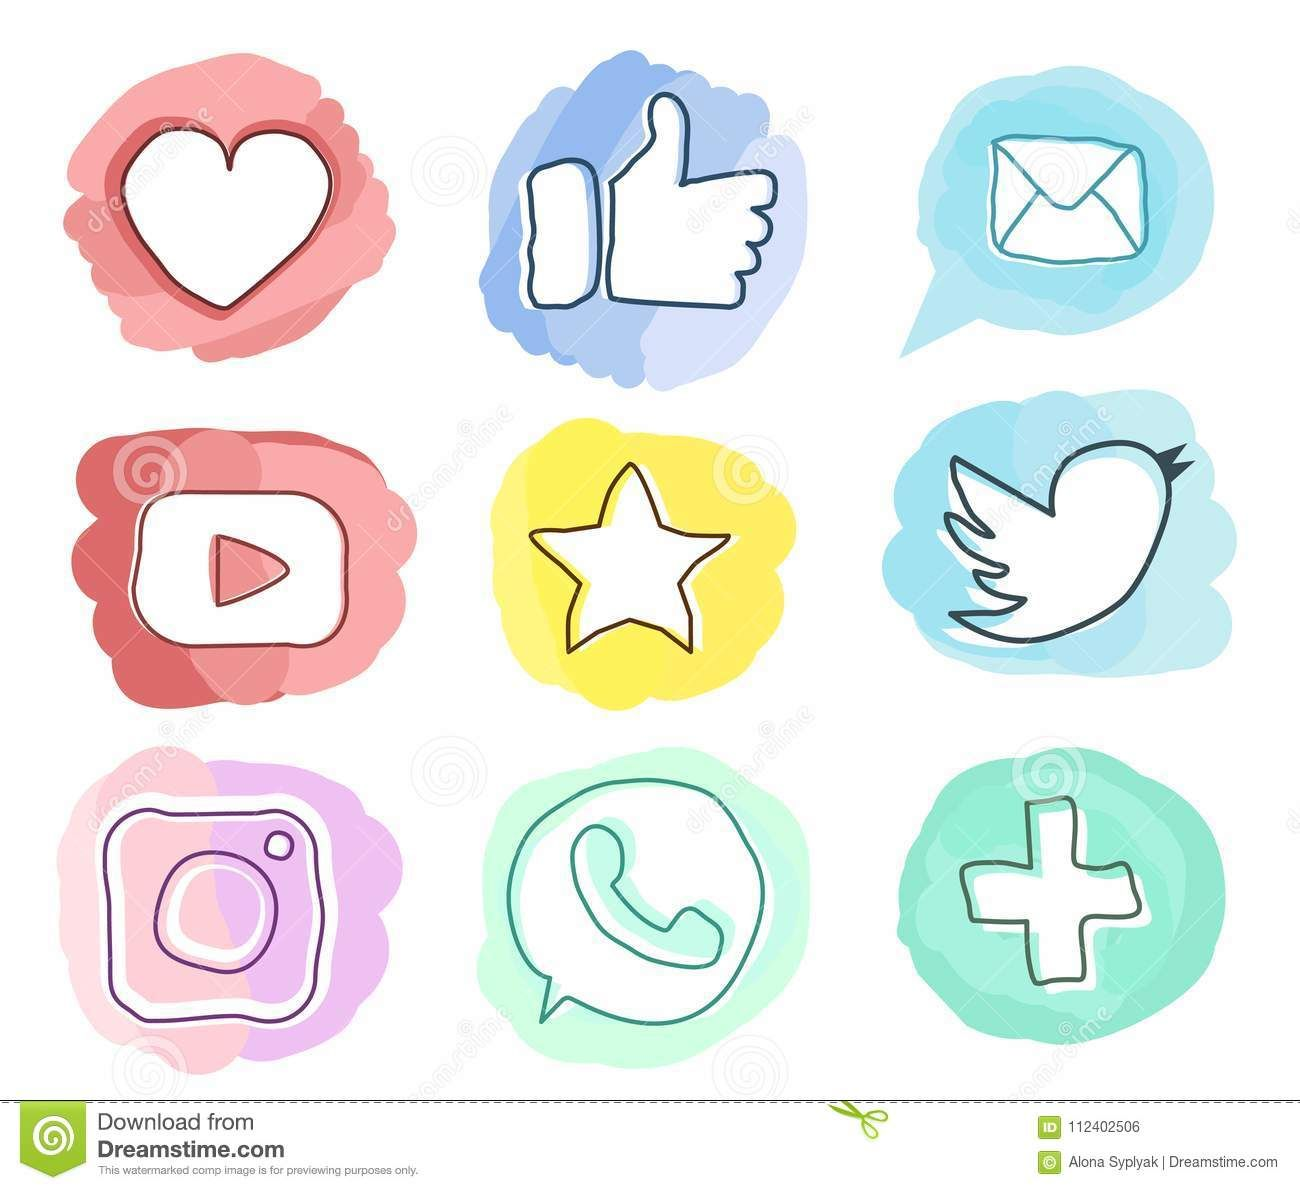 Set Of Social Media Icons.Trendy Style Watercolor Doodle